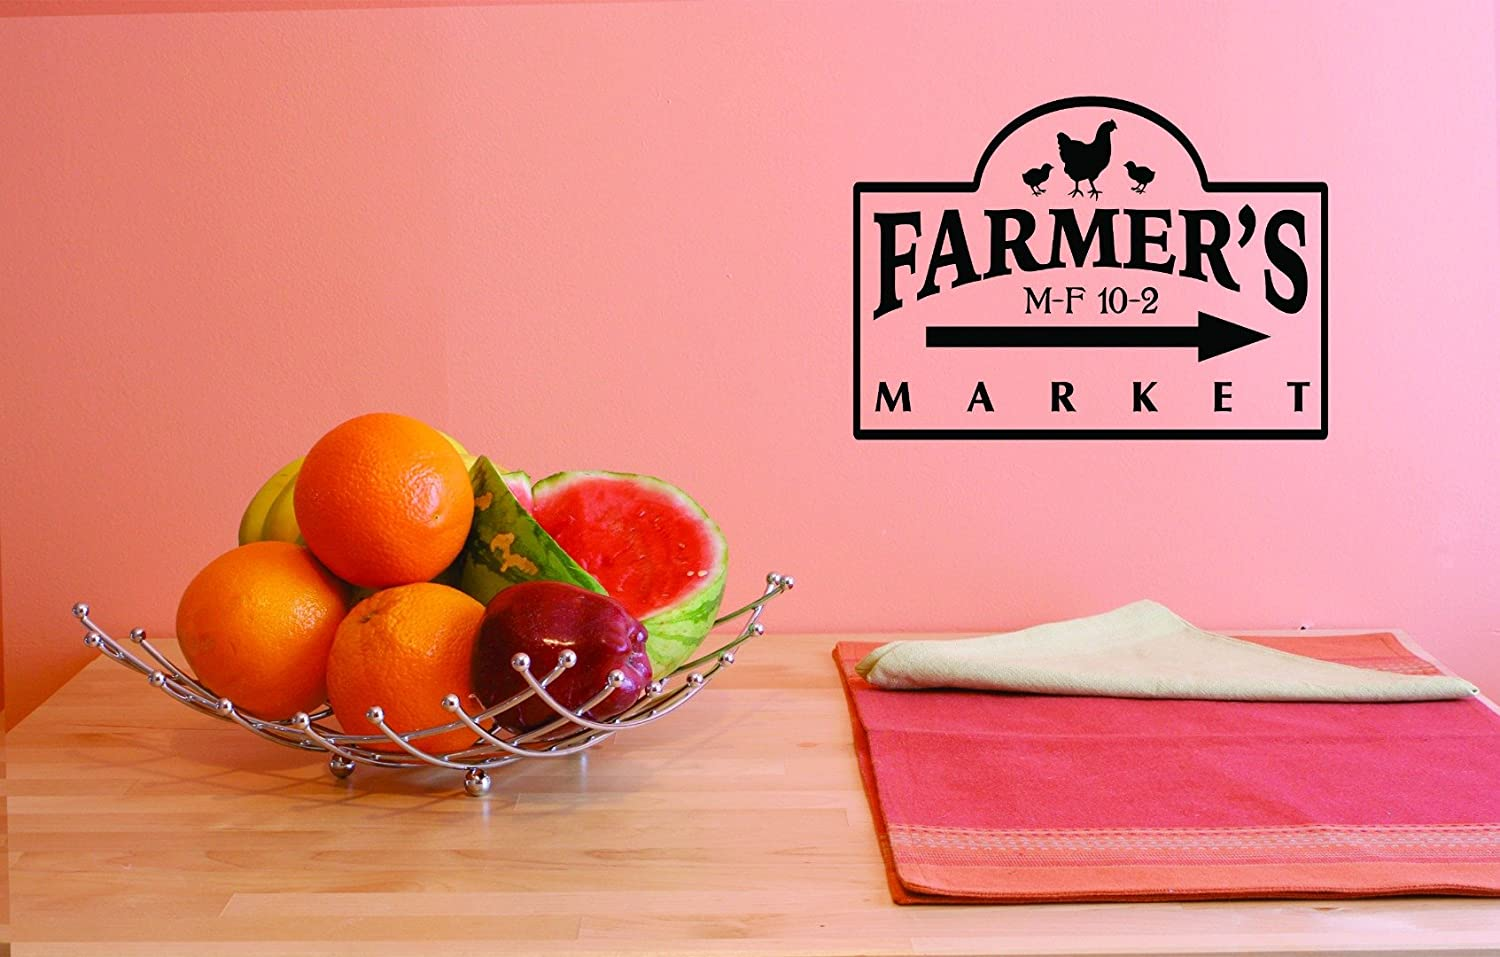 Design with Vinyl JER 1761 3 3 Hot New Decals Farmers Market Wall Art Size 20 inches x 40 inches Color 20 x 40 Black